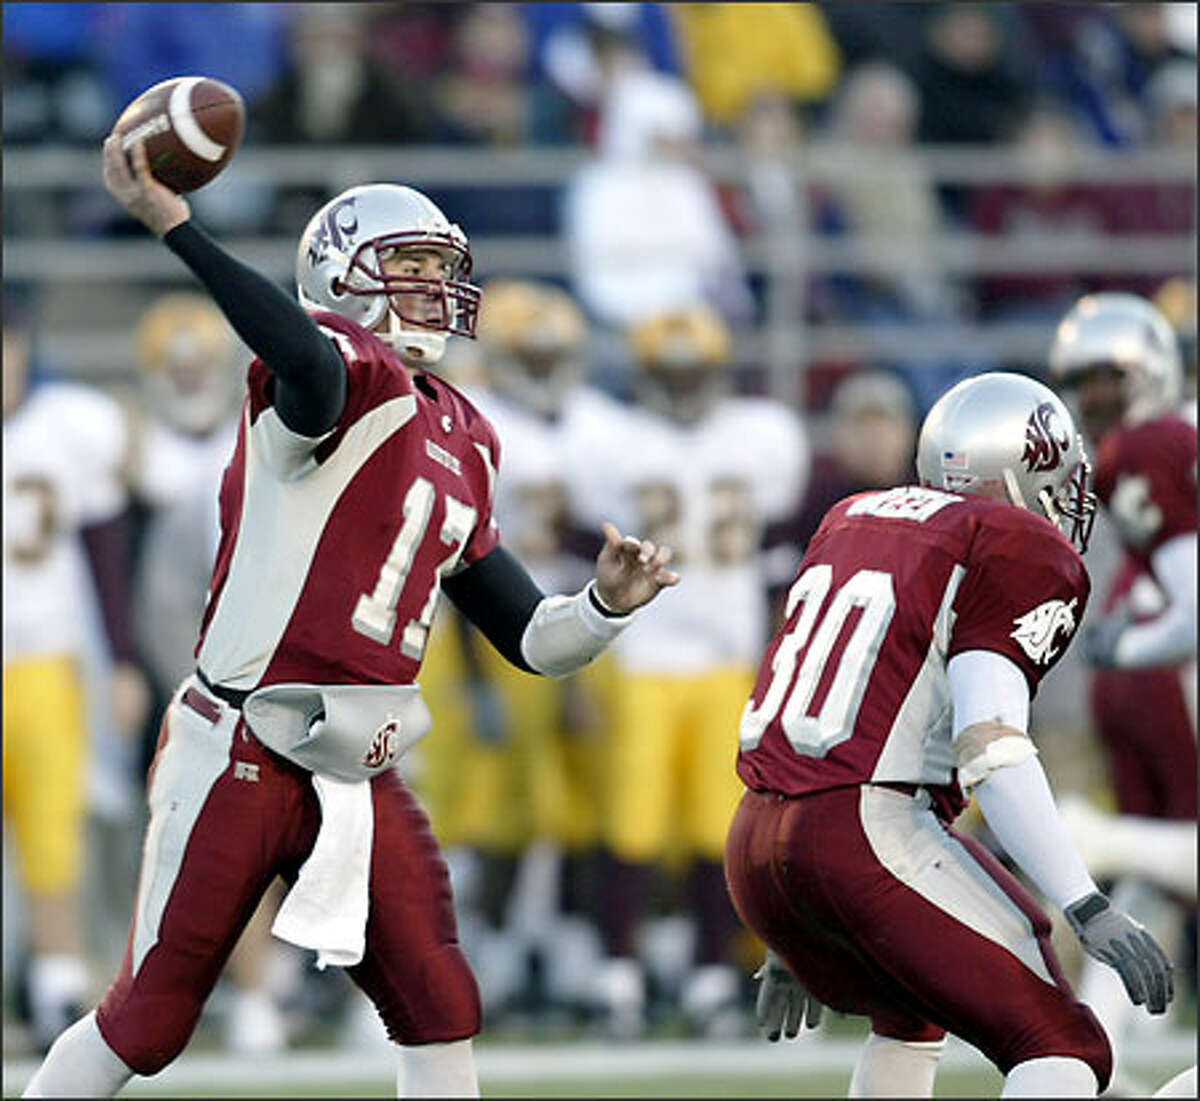 Washington State quarterback Jason Gesser, left, passes in the fourth quarter against Arizona State to break the old WSU passing record set by Jack Thompson in 1978, Saturday, Nov. 2, 2002, at Martin Stadium in Pullman, Wash. Running back Jermaine Green, right, protects Gesser on the play. (AP Photo/Jeff T. Green)